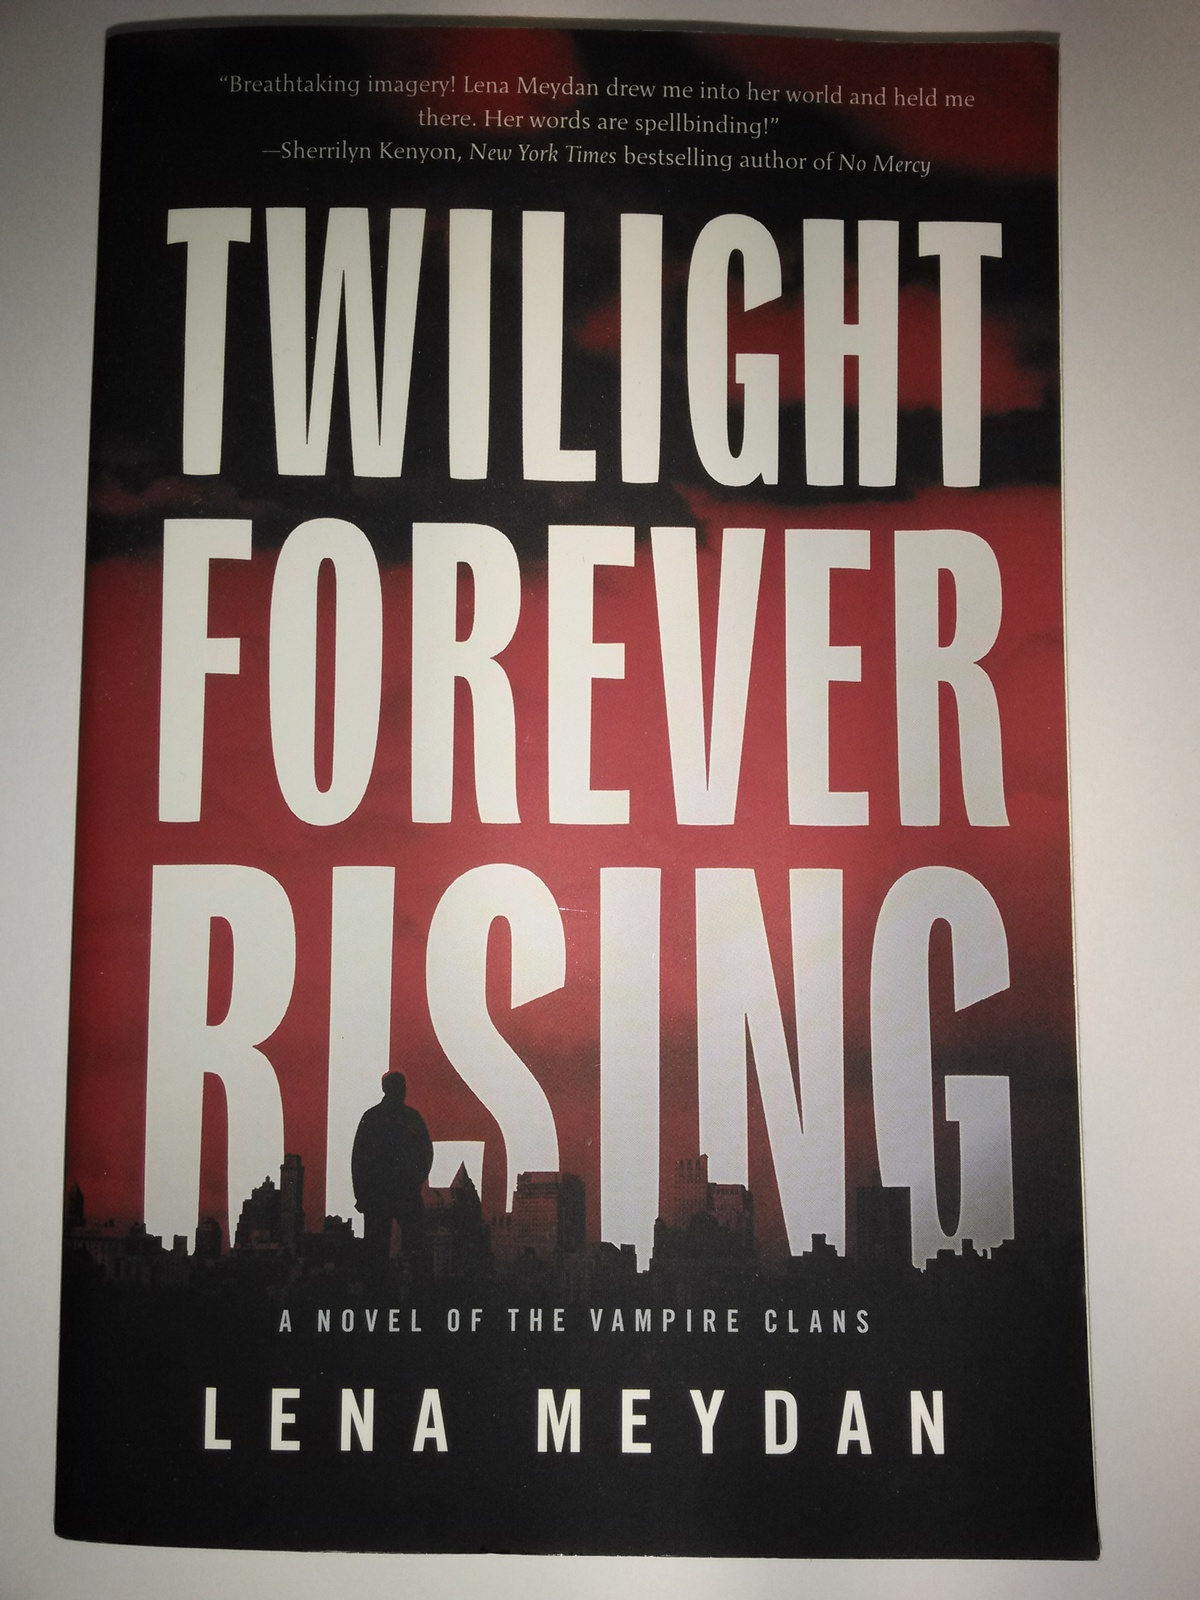 Primary image for Twilight Forever Rising (Vampire Clan Novels) Paperback – September 28,